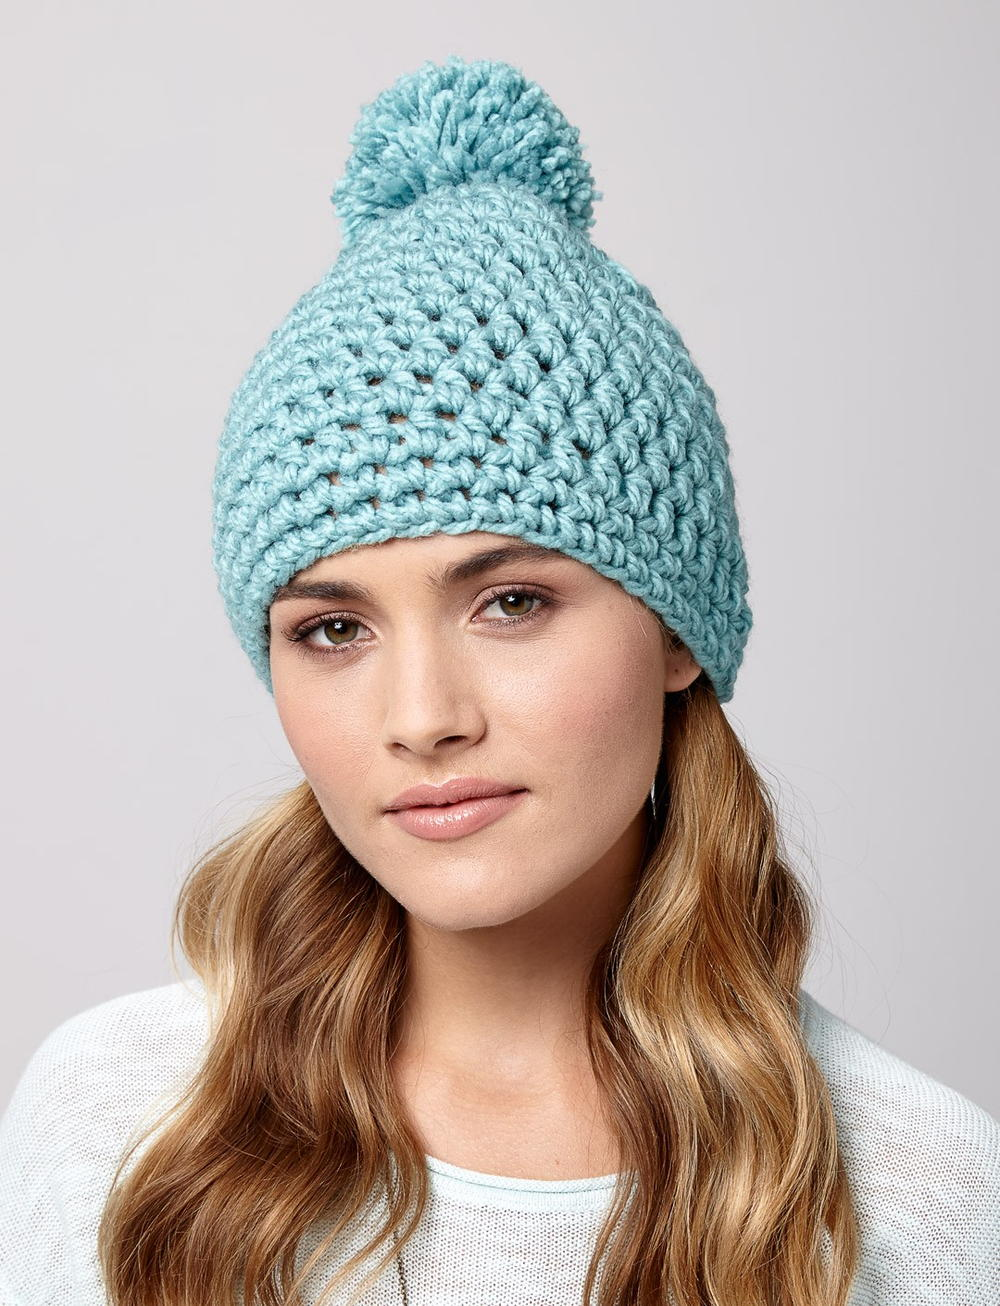 Free Crochet Patterns With Super Bulky Yarn : Snow Drift Crochet Hat AllFreeCrochet.com